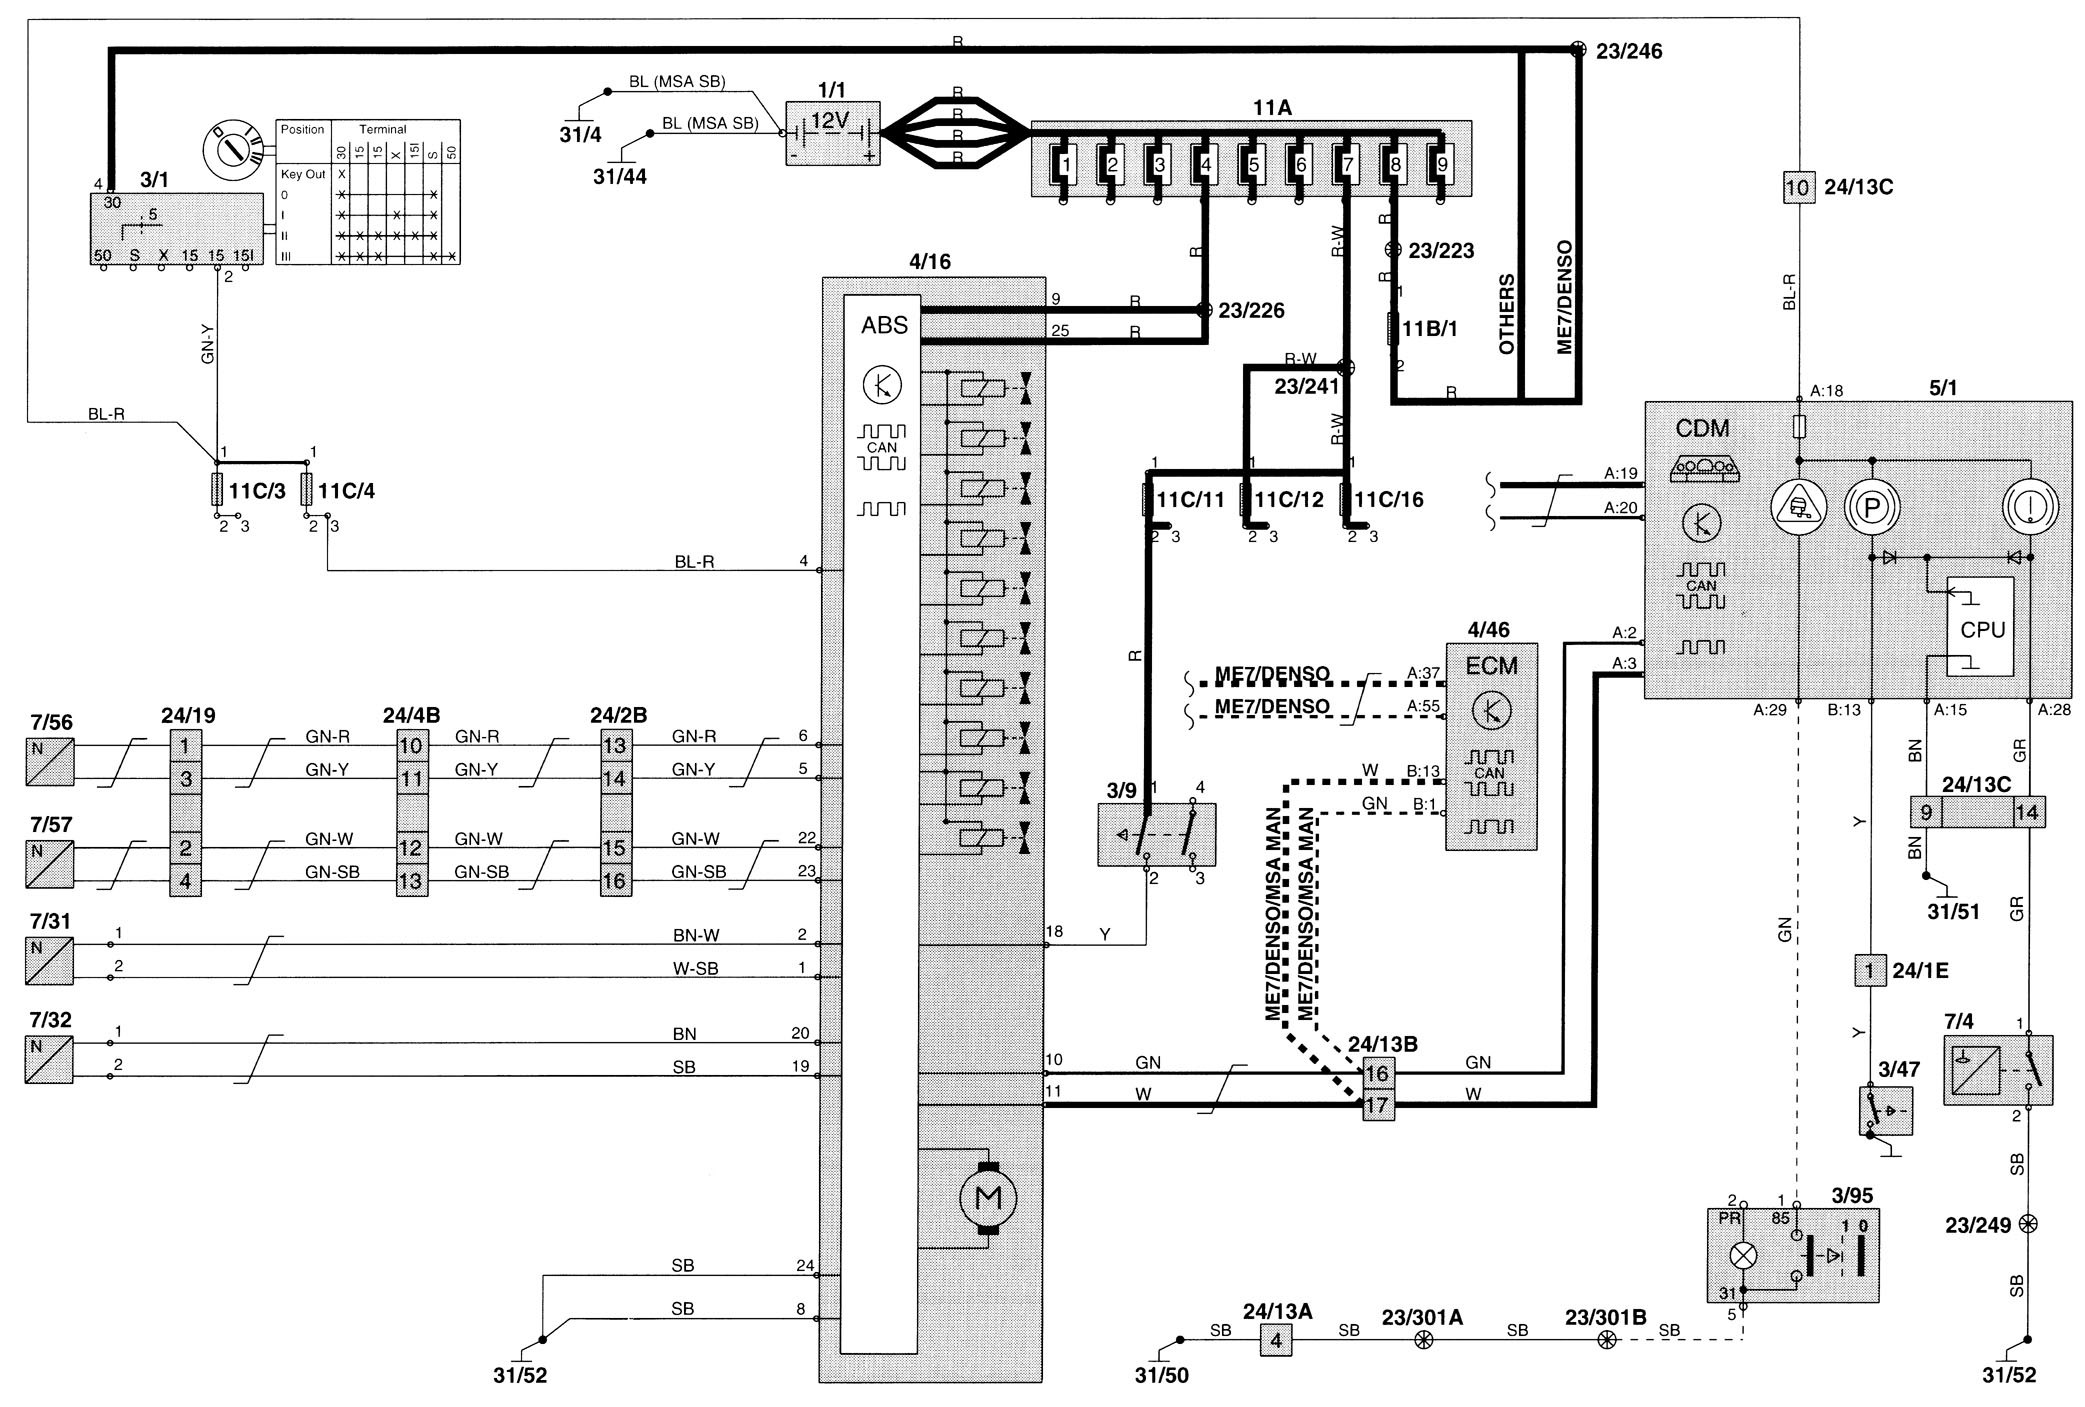 volvo c70 wiring diagram brake control 1999 c70 wiring diagram 1969 honda ct90 wiring diagram \u2022 wiring volvo amazon wiring diagram at edmiracle.co